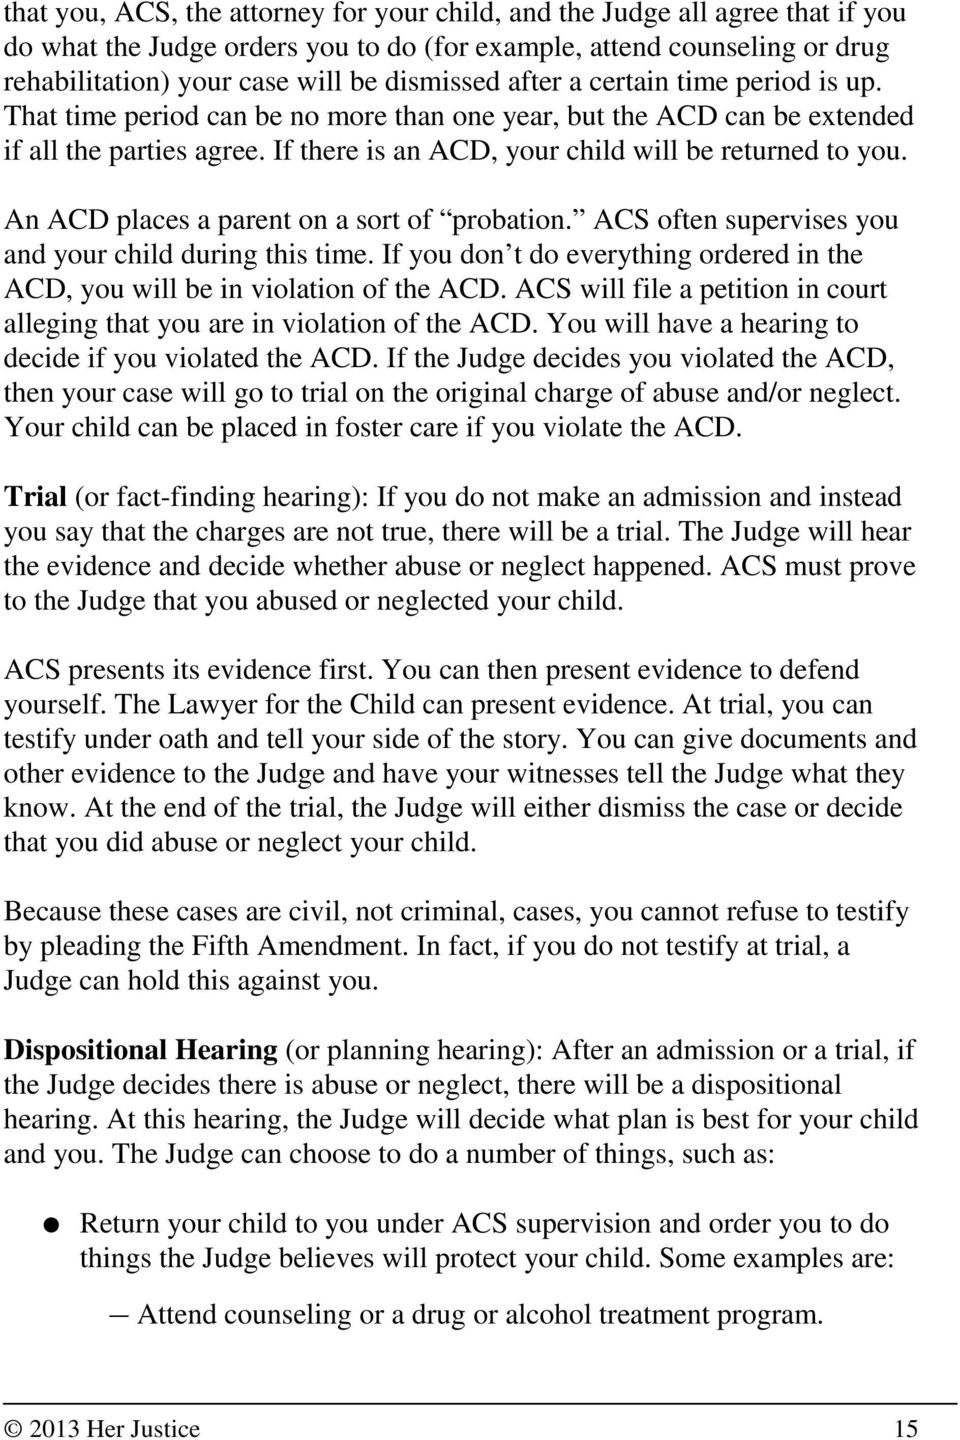 An ACD places a parent on a sort of probation. ACS often supervises you and your child during this time. If you don t do everything ordered in the ACD, you will be in violation of the ACD.